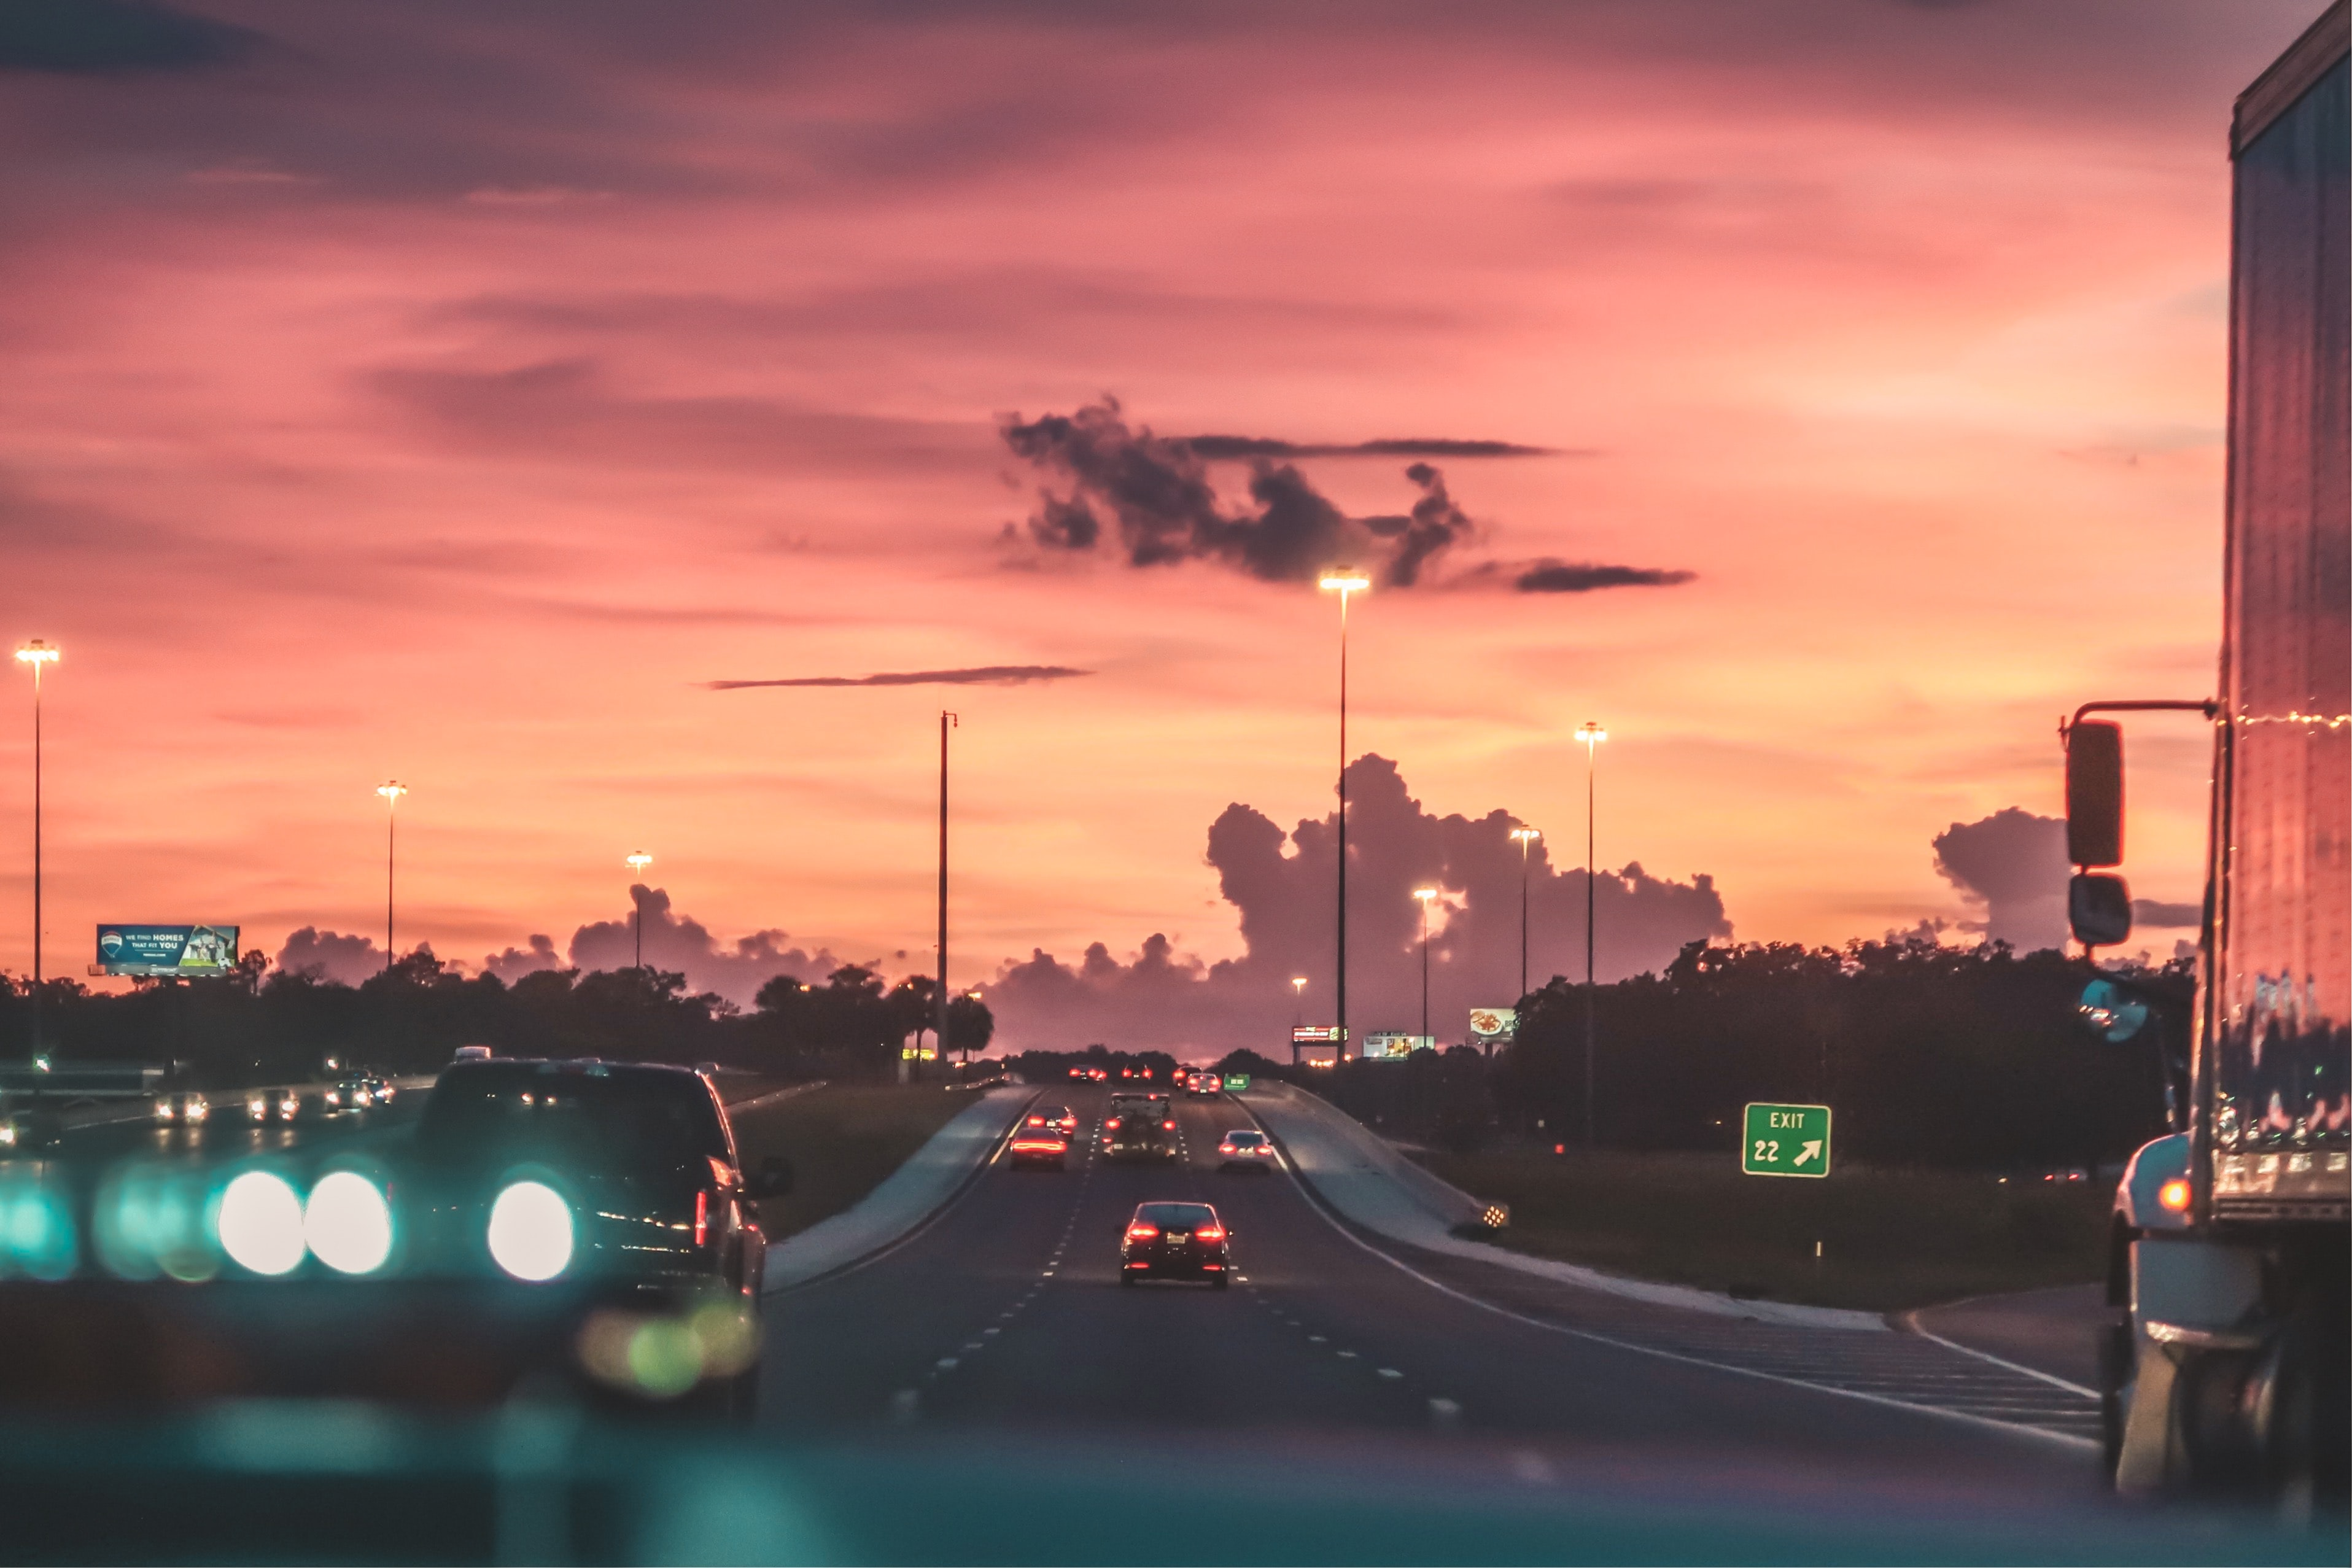 cars on road in sunset